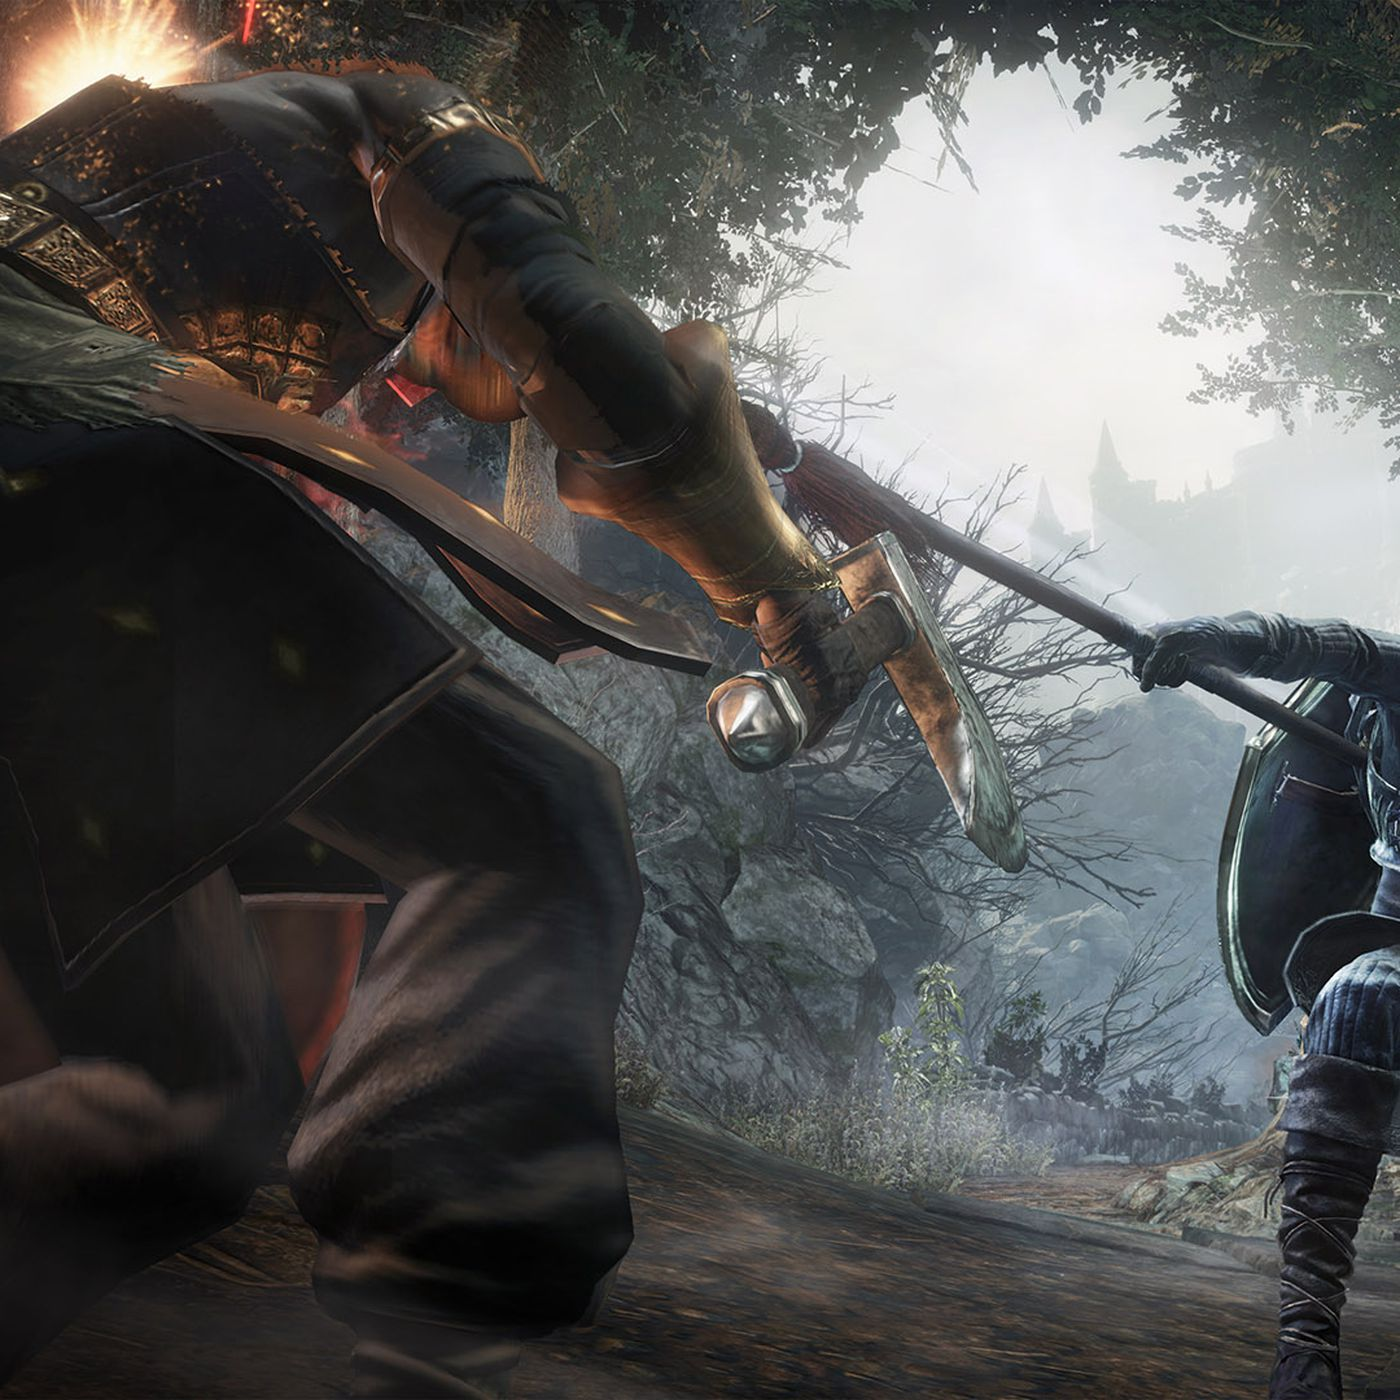 Dark Souls' director 'doesn't believe' player who beat the